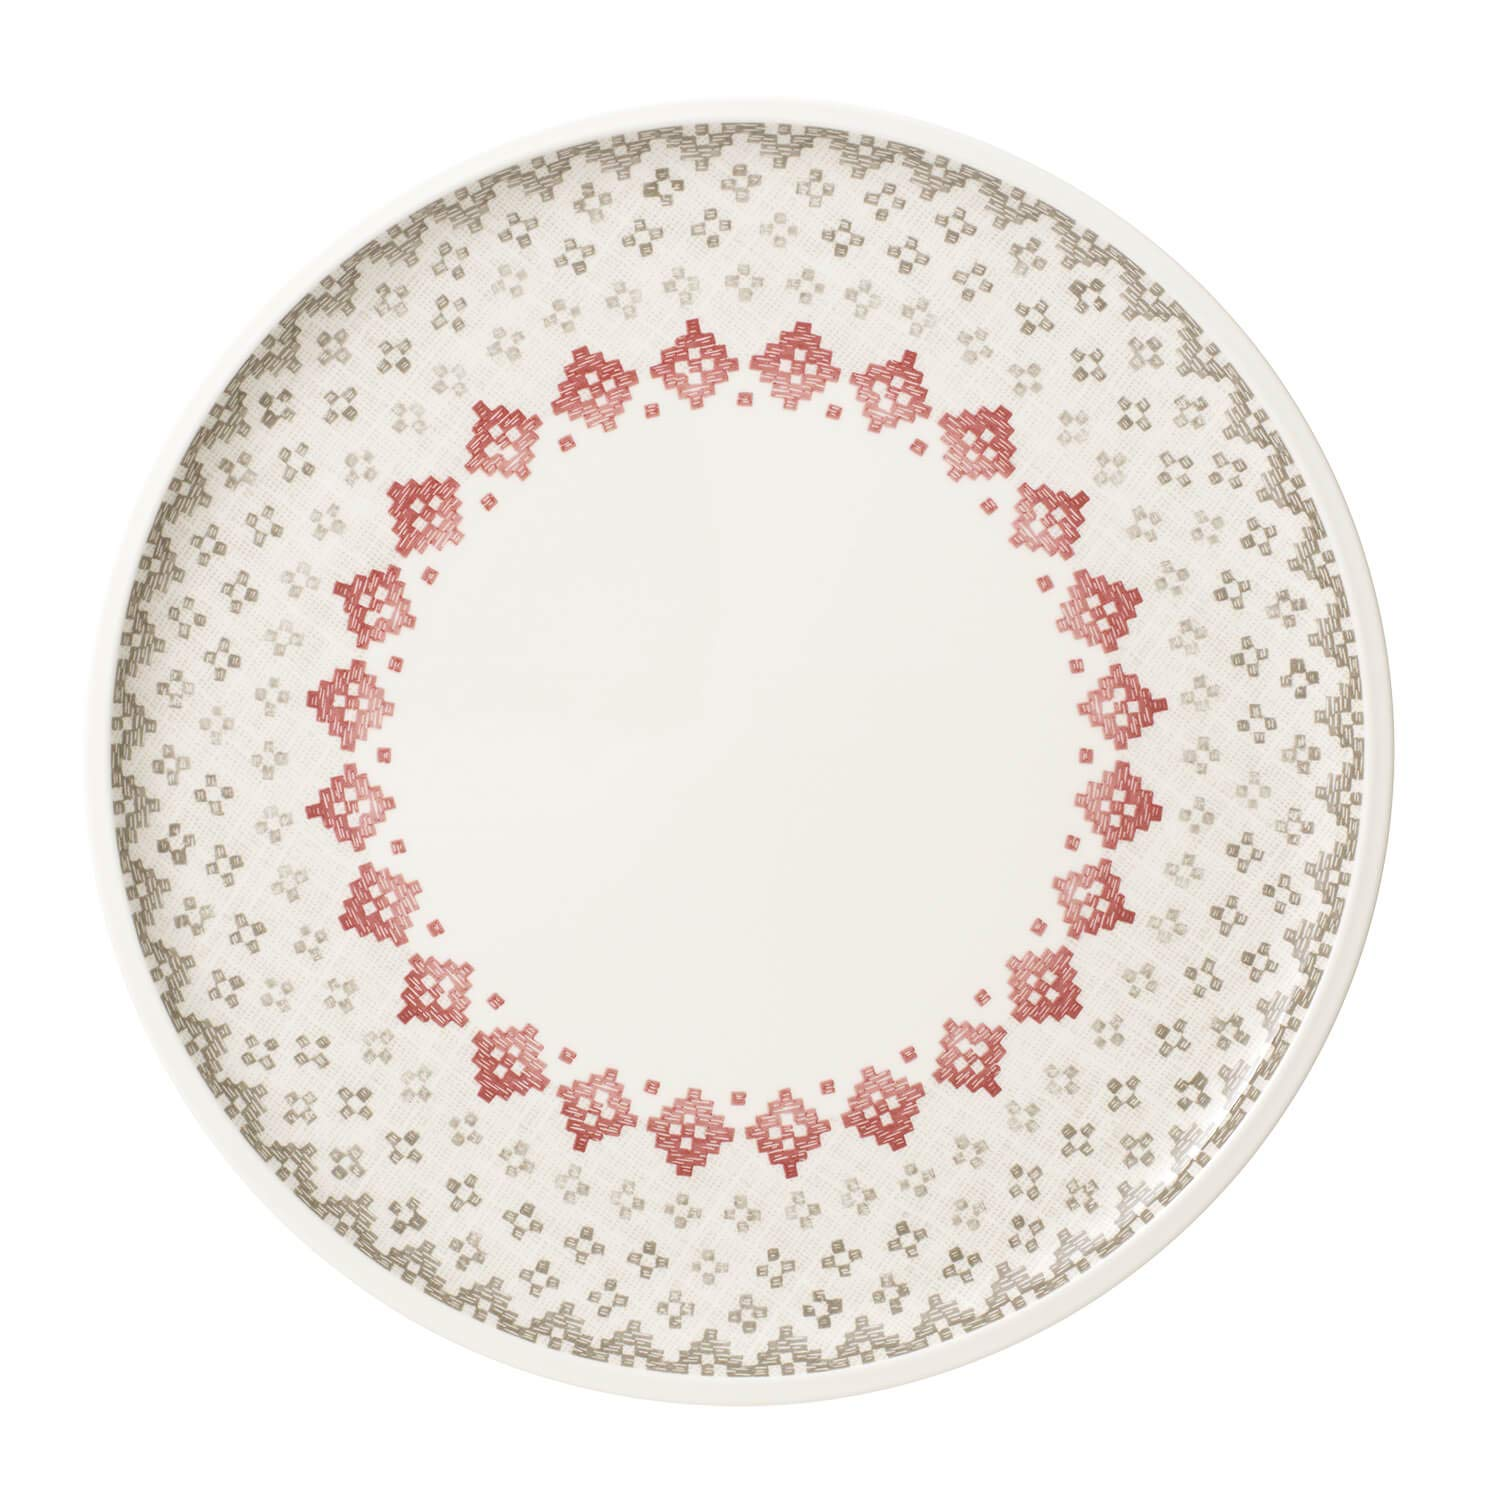 Artesano Montagne Buffet/ Pizza Plate by Villeroy & Boch - Premium Porcelain - Made in Germany - Dishwasher and Microwave Safe - 12.5 Inches by Villeroy & Boch